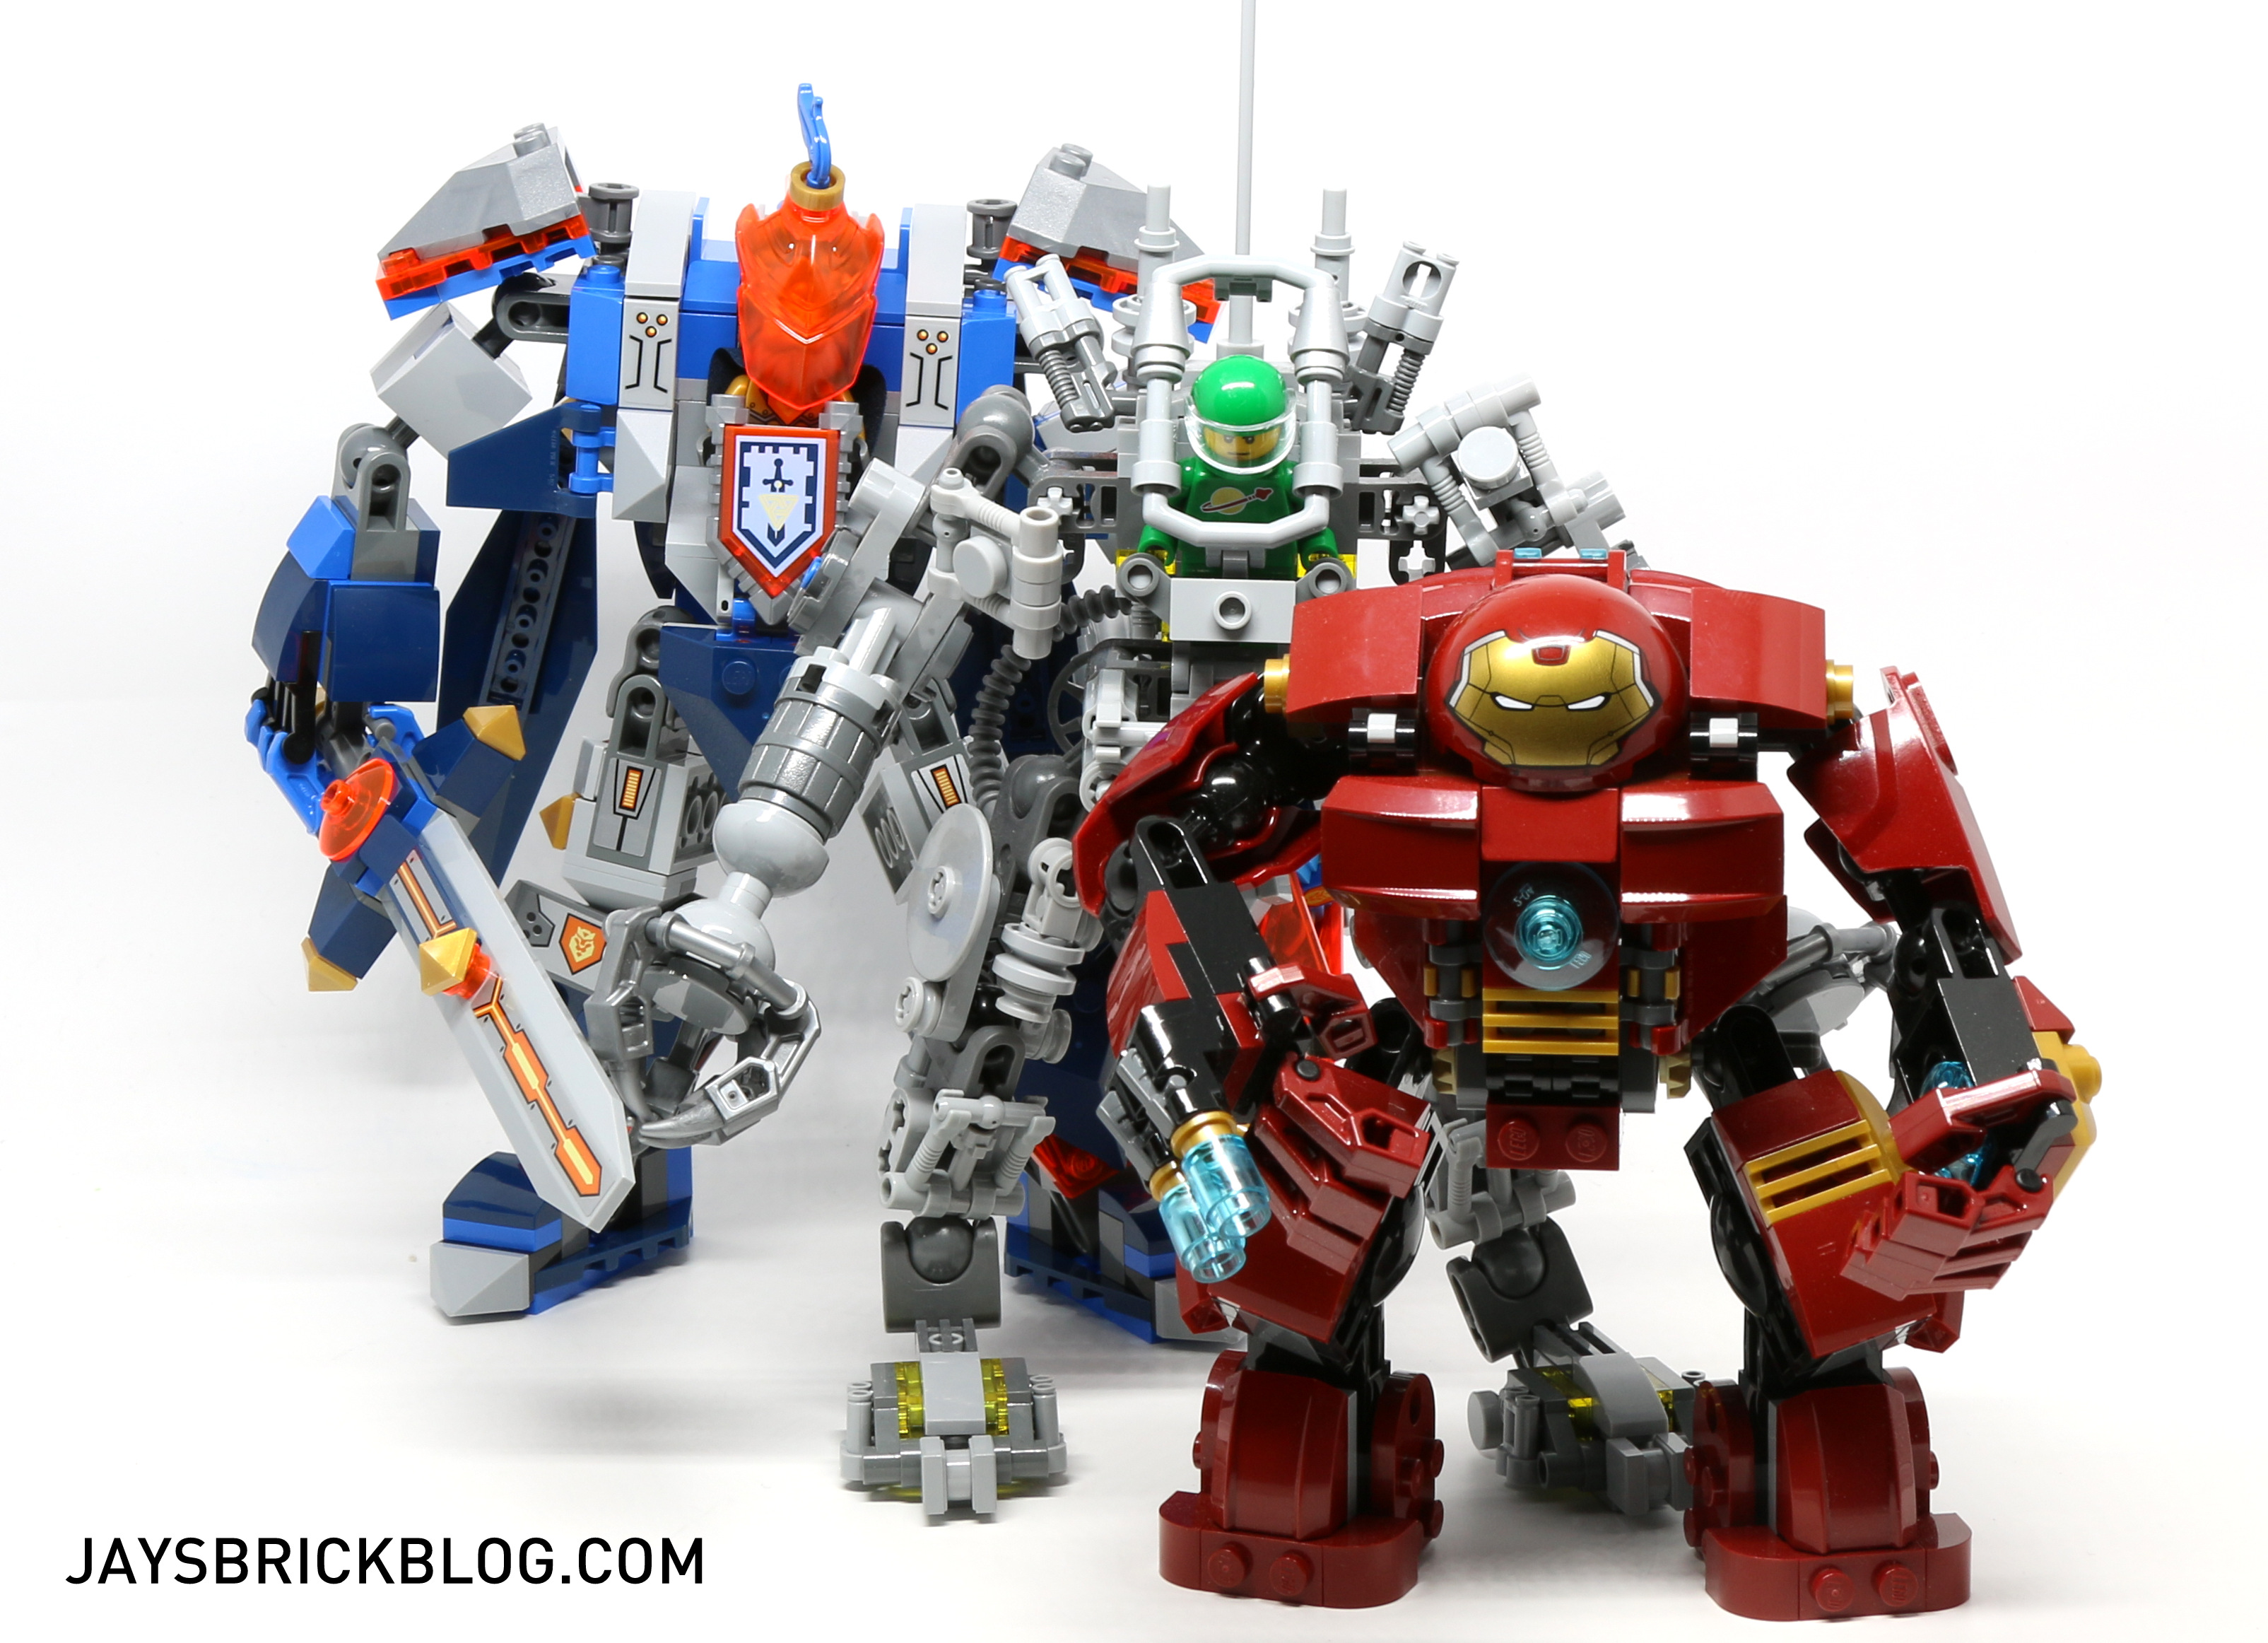 Review: LEGO 70327 The King's Mech – Jay's Brick Blog